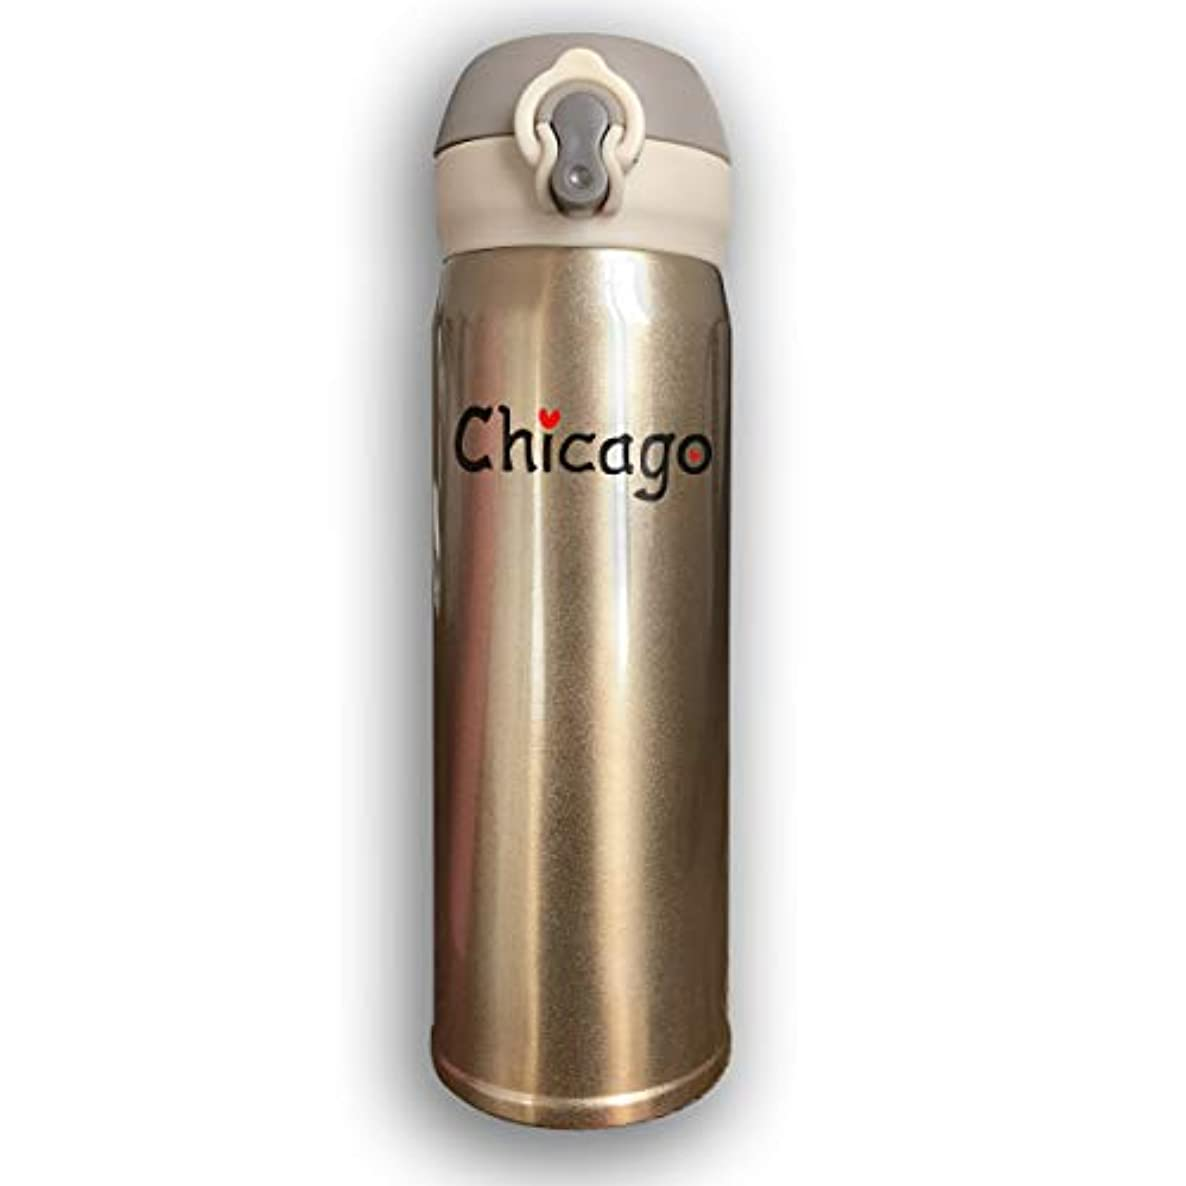 Thermoses Stainless Steel Coffee Mug Love Chicago Travel Mugs for Home Office School Works Car Great for Hot and Cold Drink Free Flip Cap Double Wall - Pink